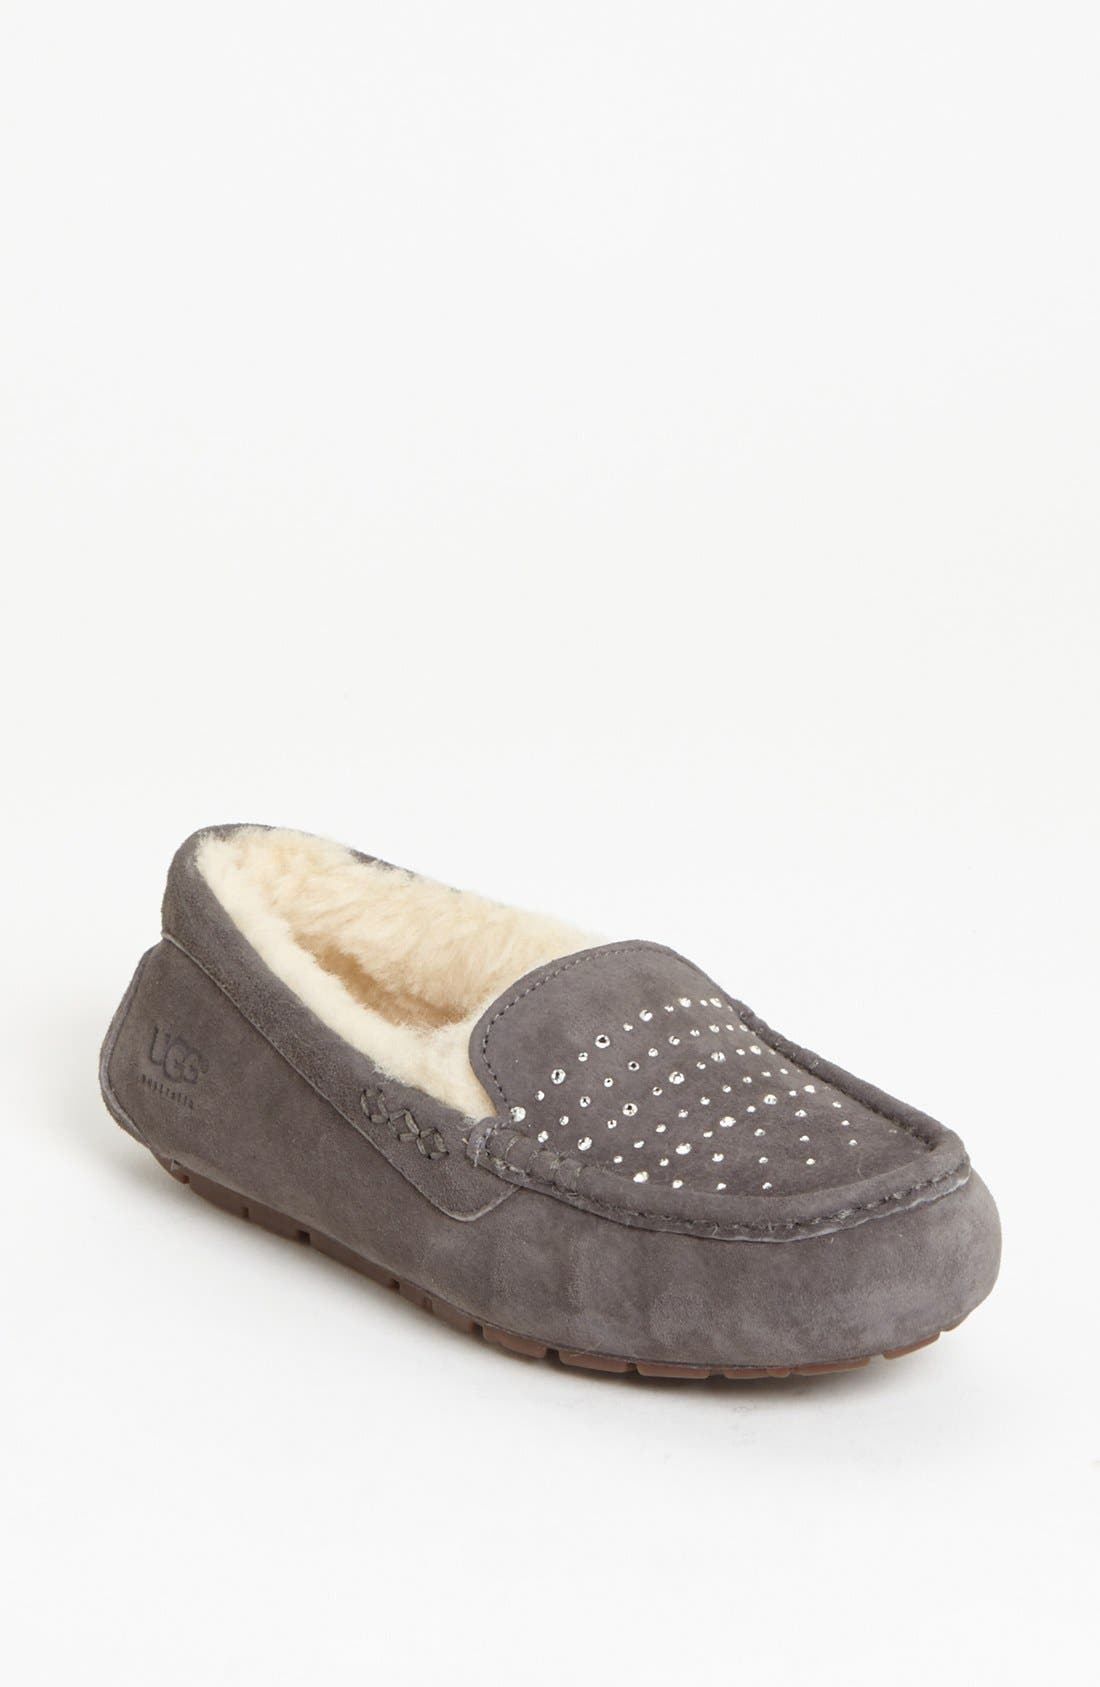 Alternate Image 1 Selected - UGG® Australia 'Bling' Slipper